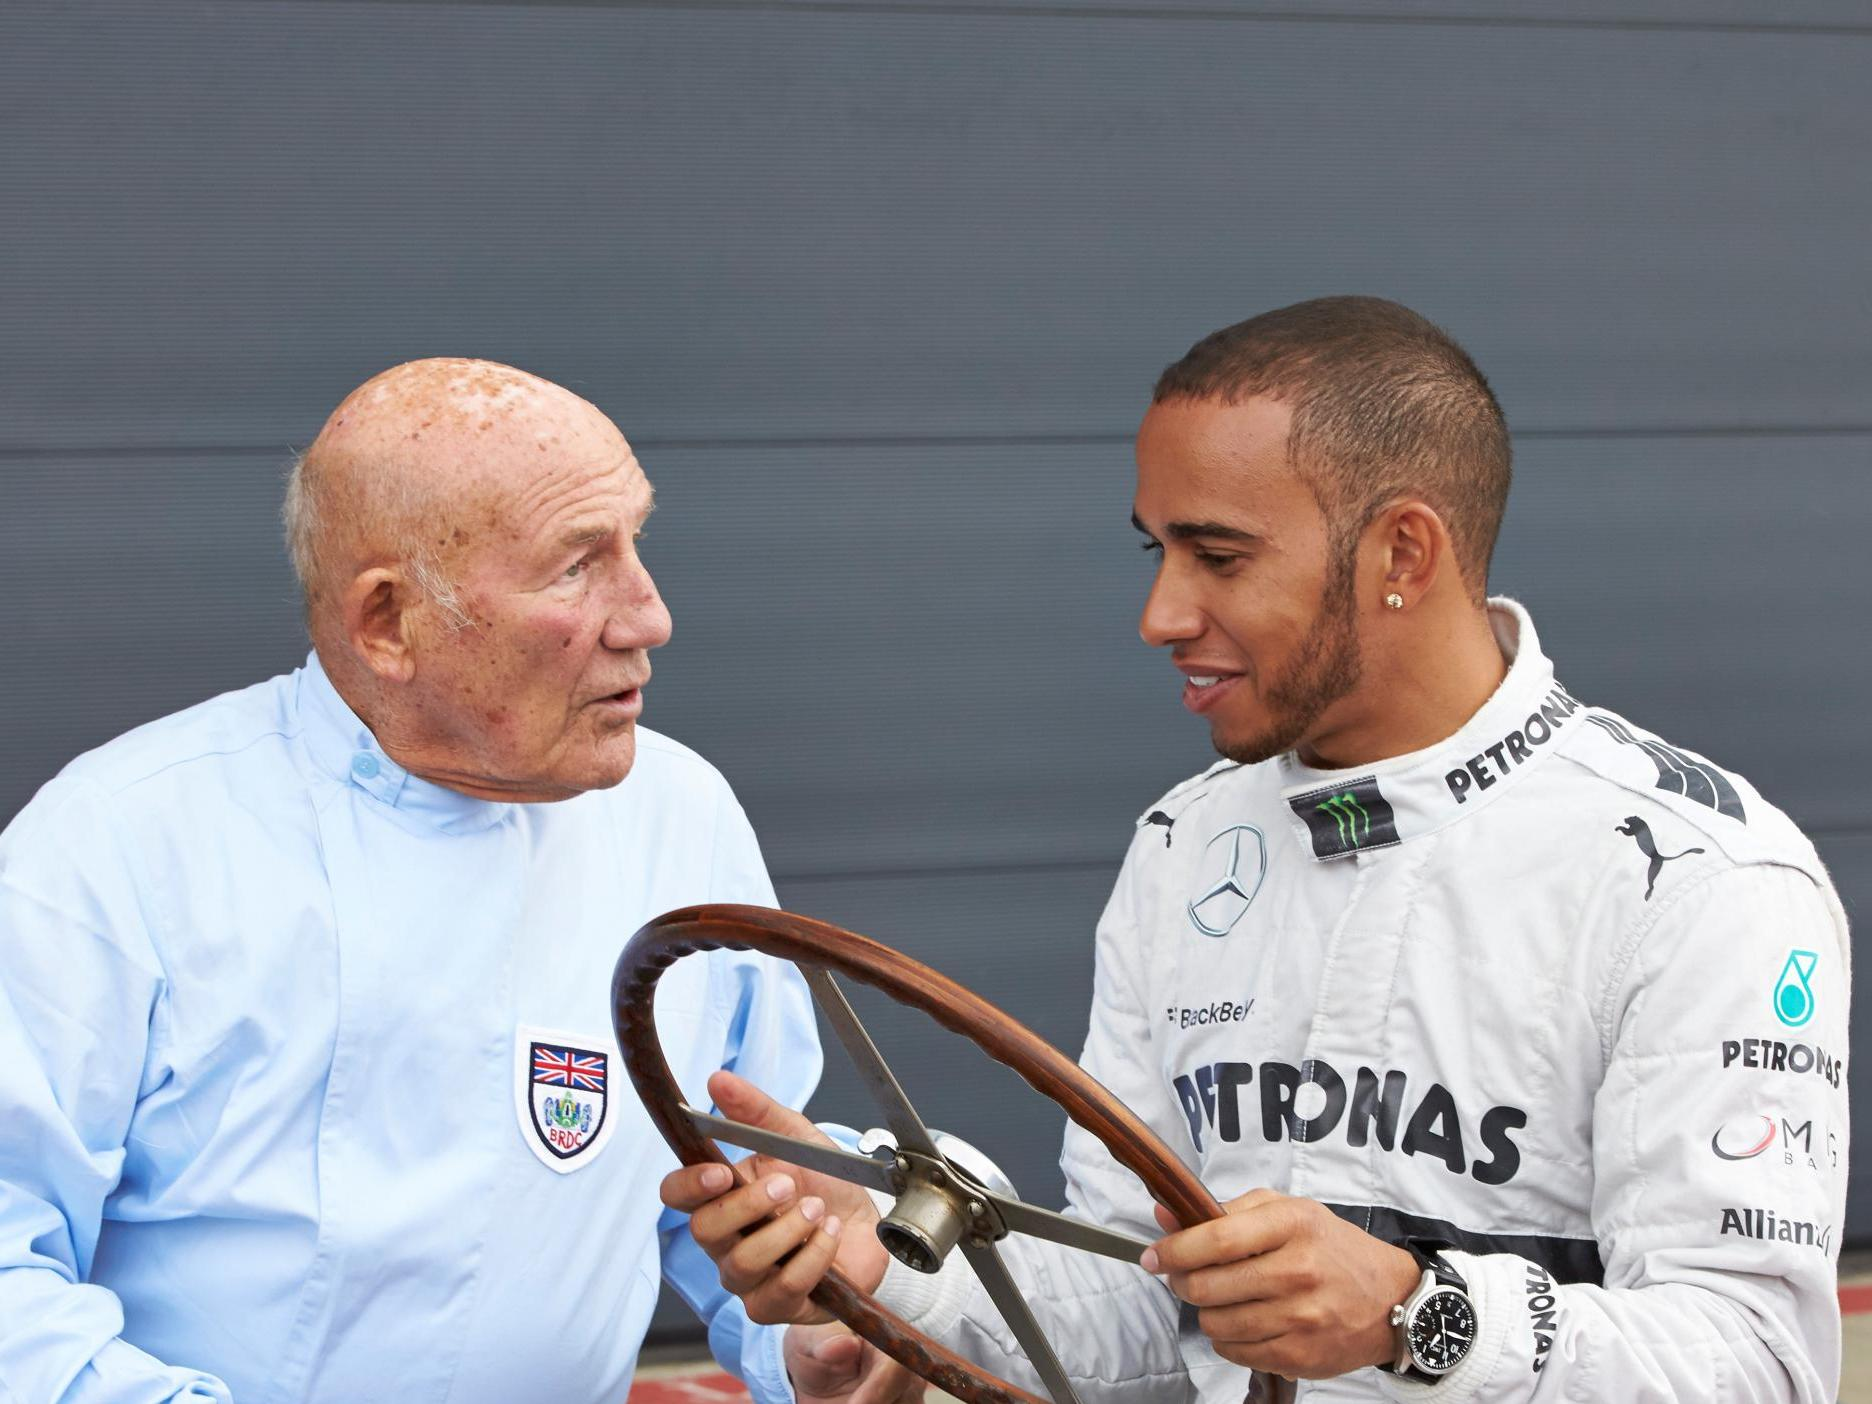 F1: Lewis Hamilton hails Sir Stirling Moss as a 'living legend' ahead of 90th birthday